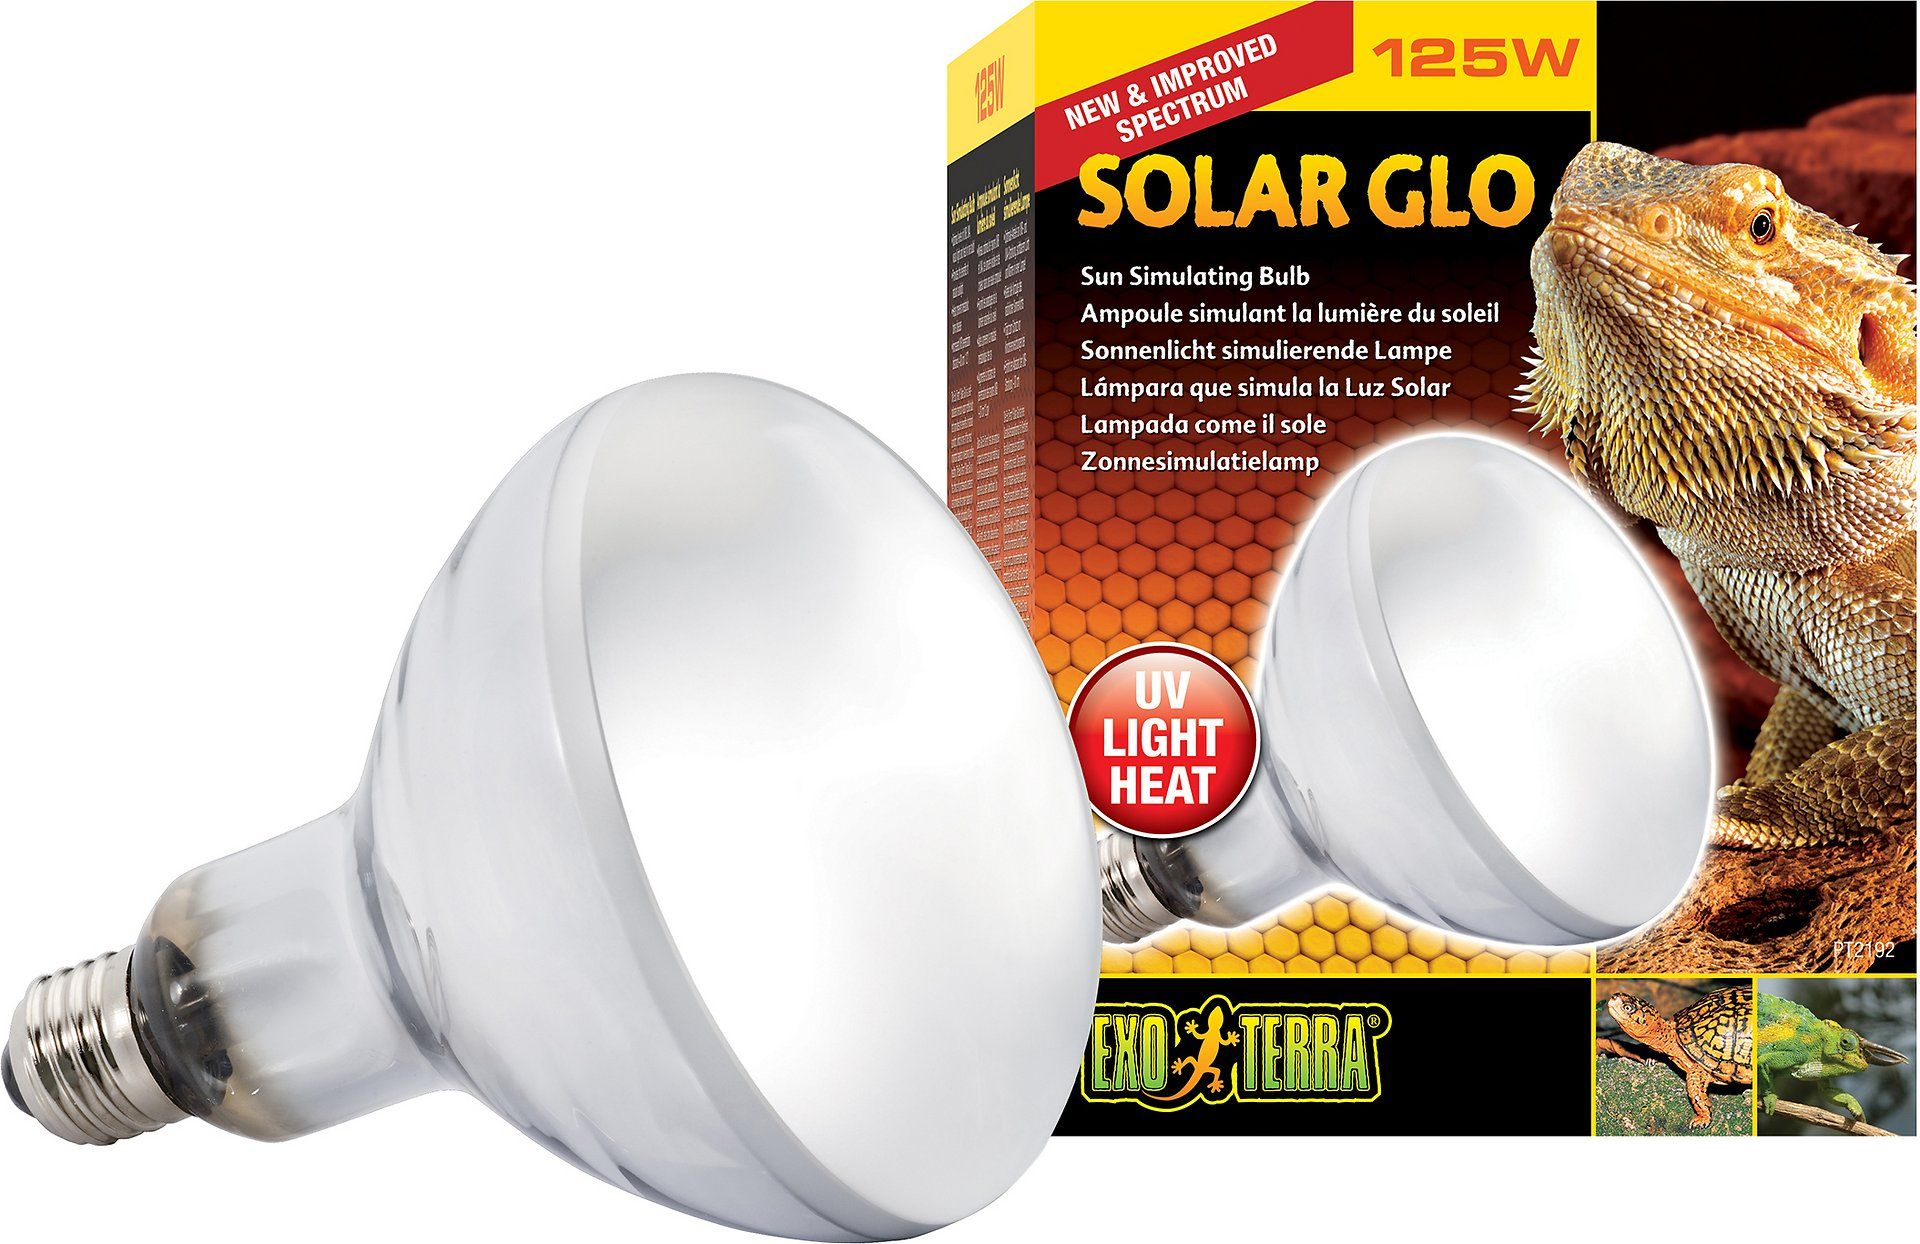 Exo Terra Solar Glo All In One Reptile Lamp 160 W Bulb Chewy